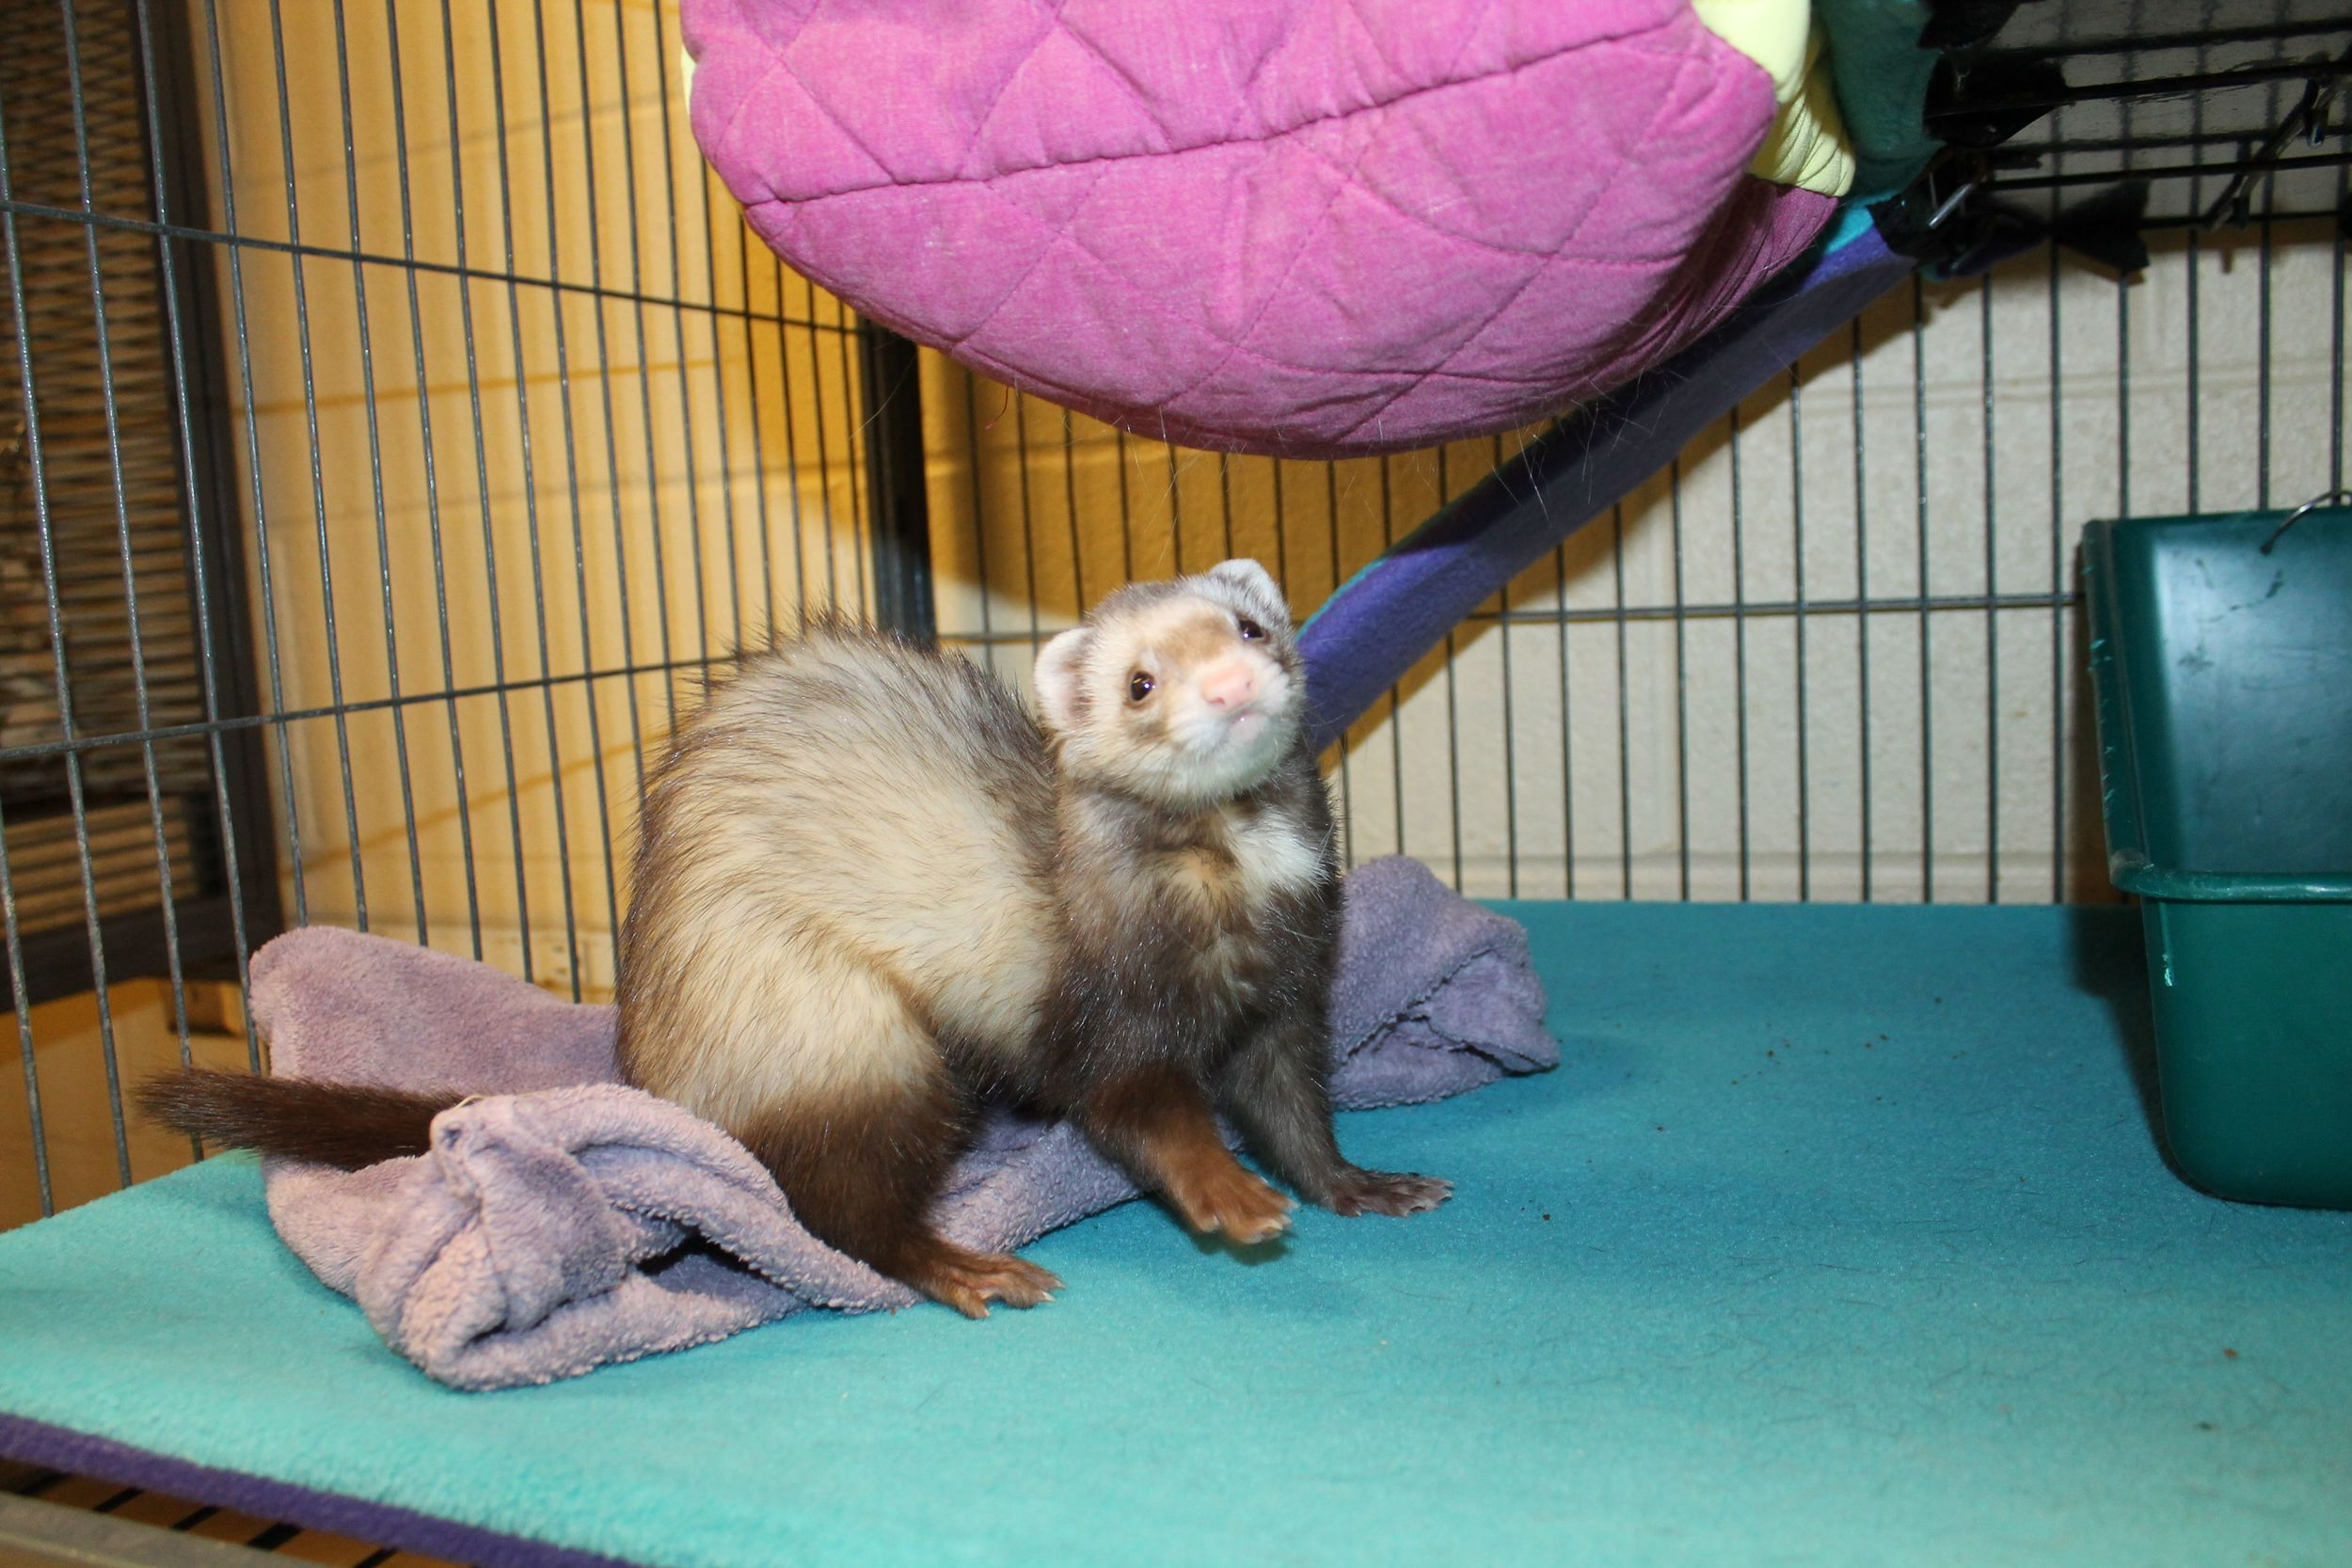 Rose is a playful little gal! She can, however, be a bit too rowdy and play a bit too rough. An experienced ferret family might be best for her. A home with another young and playful ferret might also be a good match. Ask to set up a meet and greet if you are interested in having Rose as a companion for your ferret!